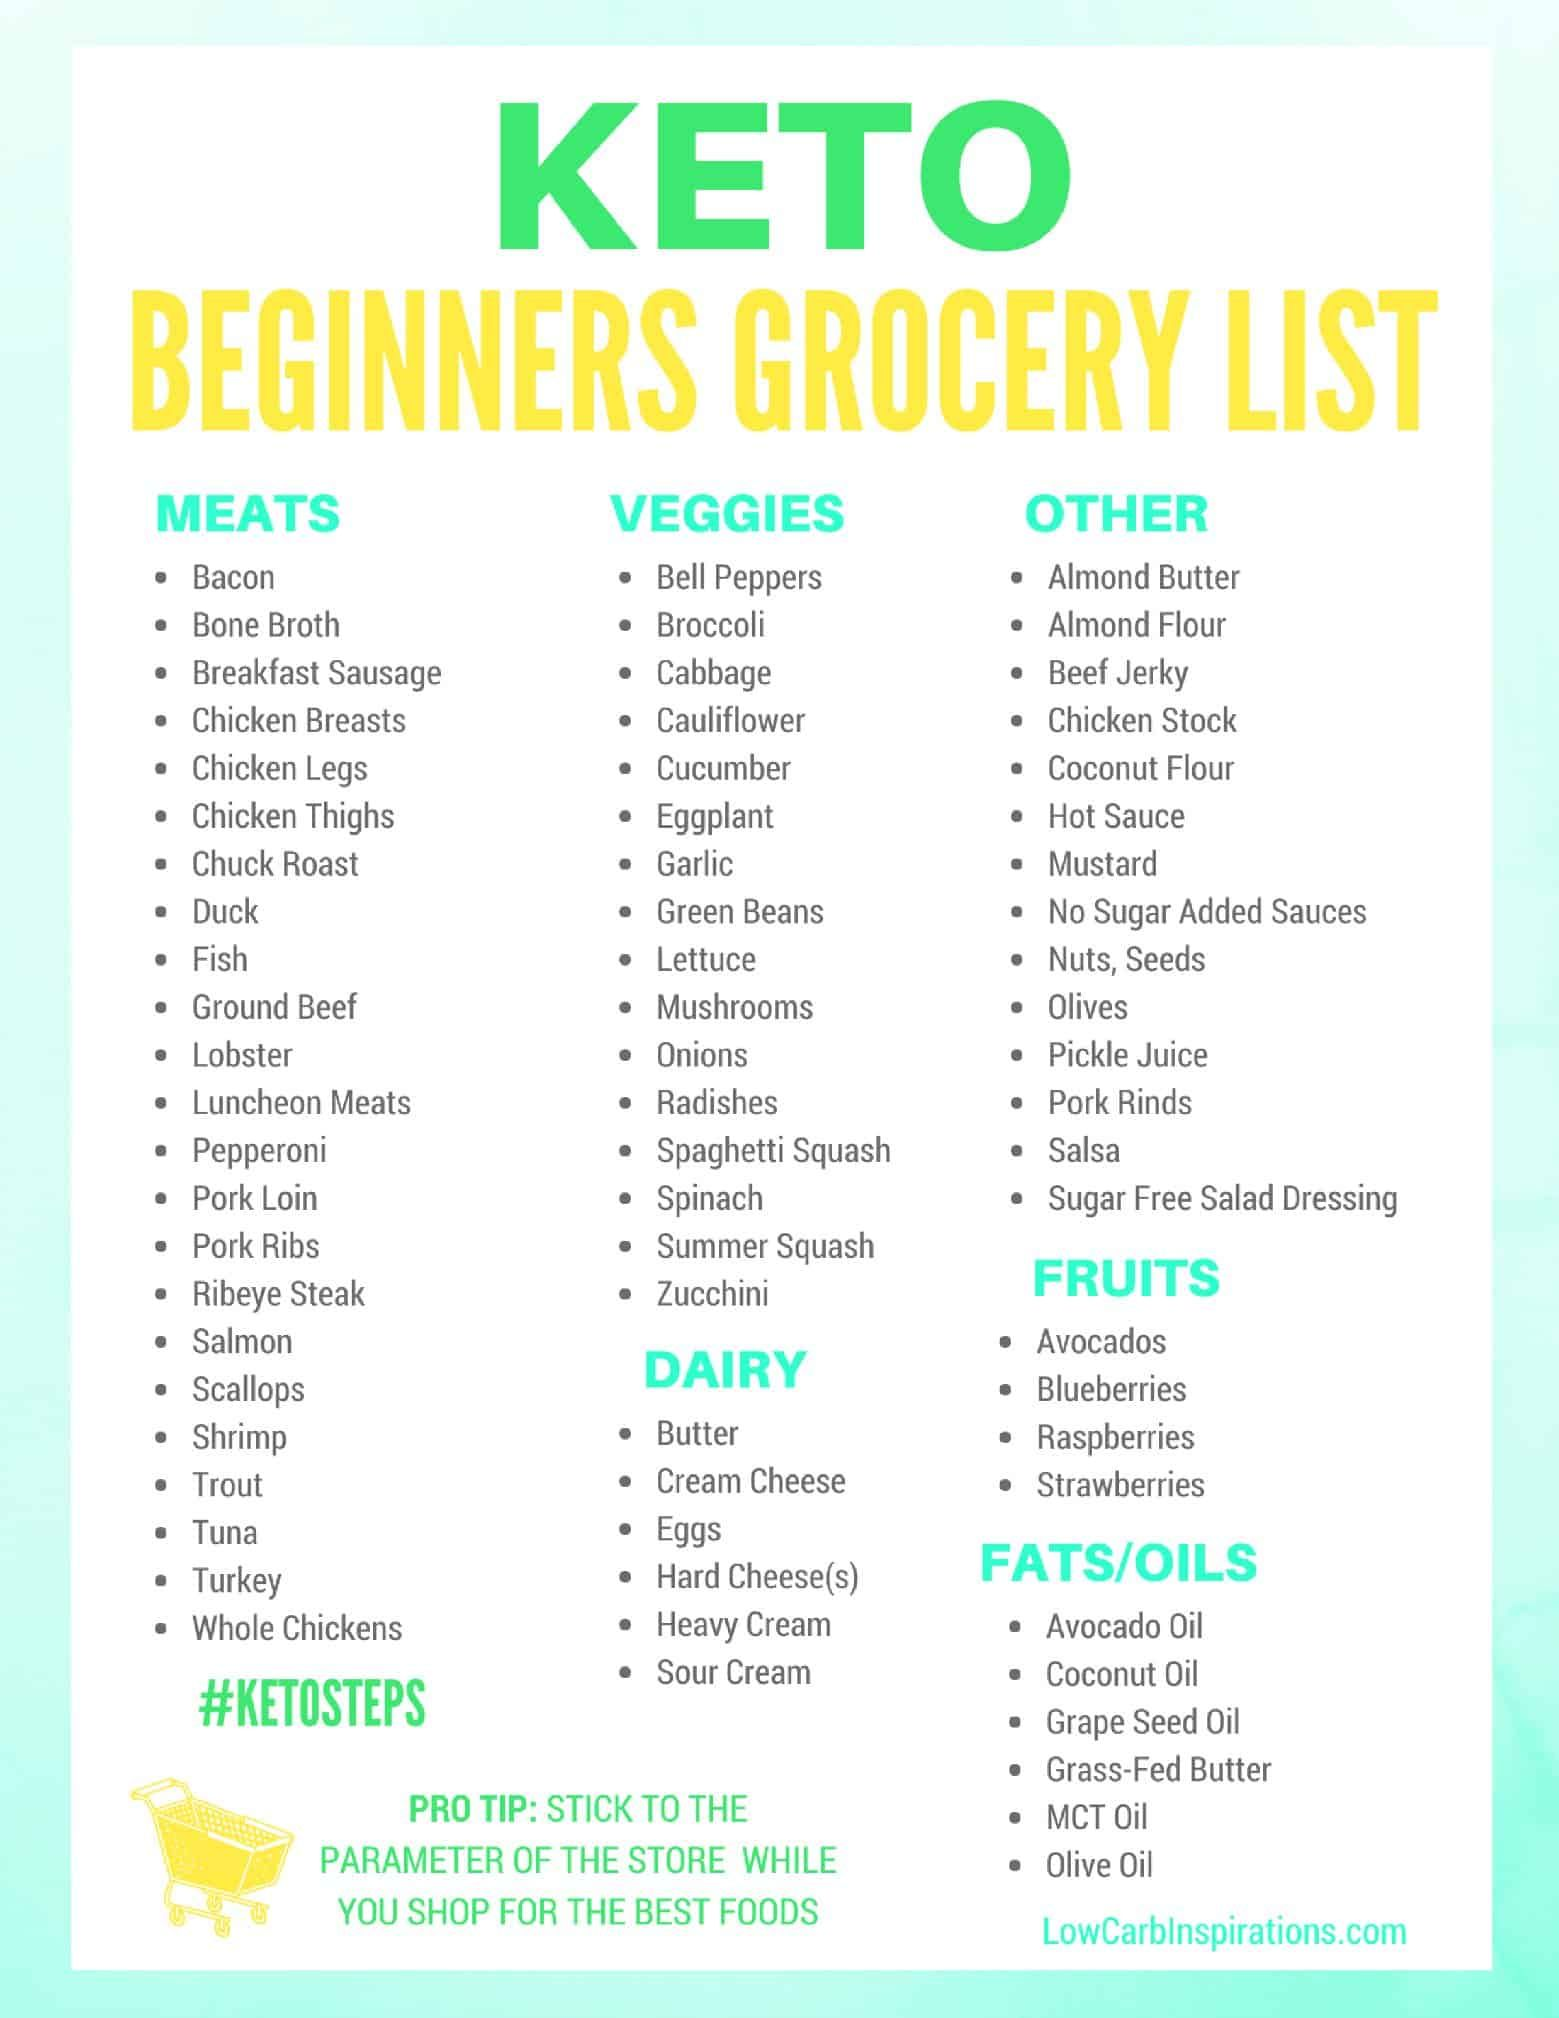 Keto Grocery List for Beginners #dietplan #diet #weightloss #weightlosstransform…